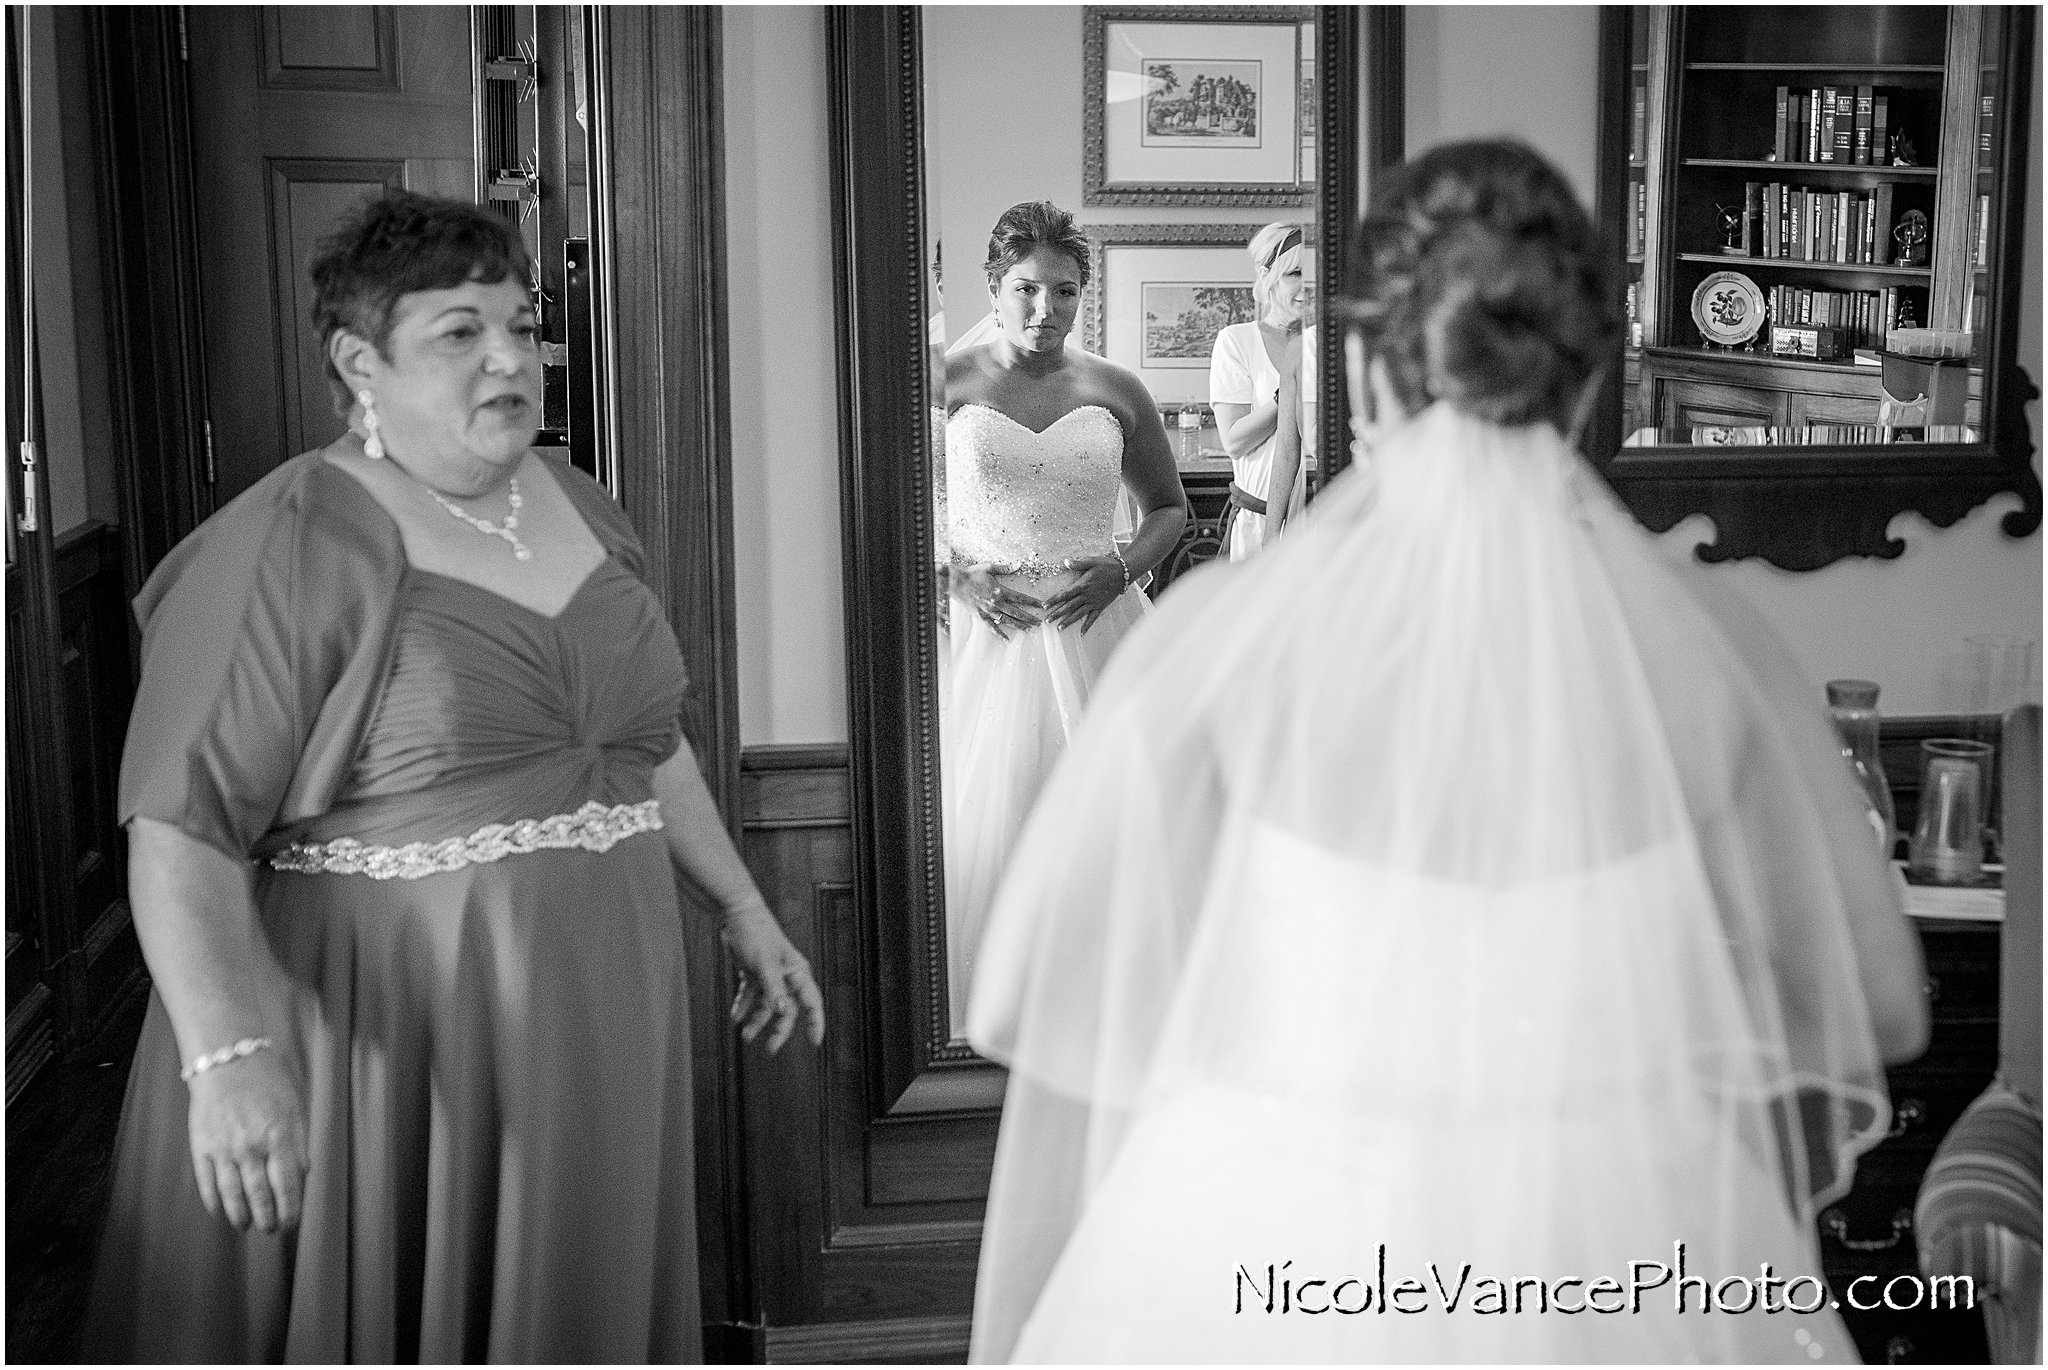 The bride makes final preparations for her wedding at Virginia Crossings.